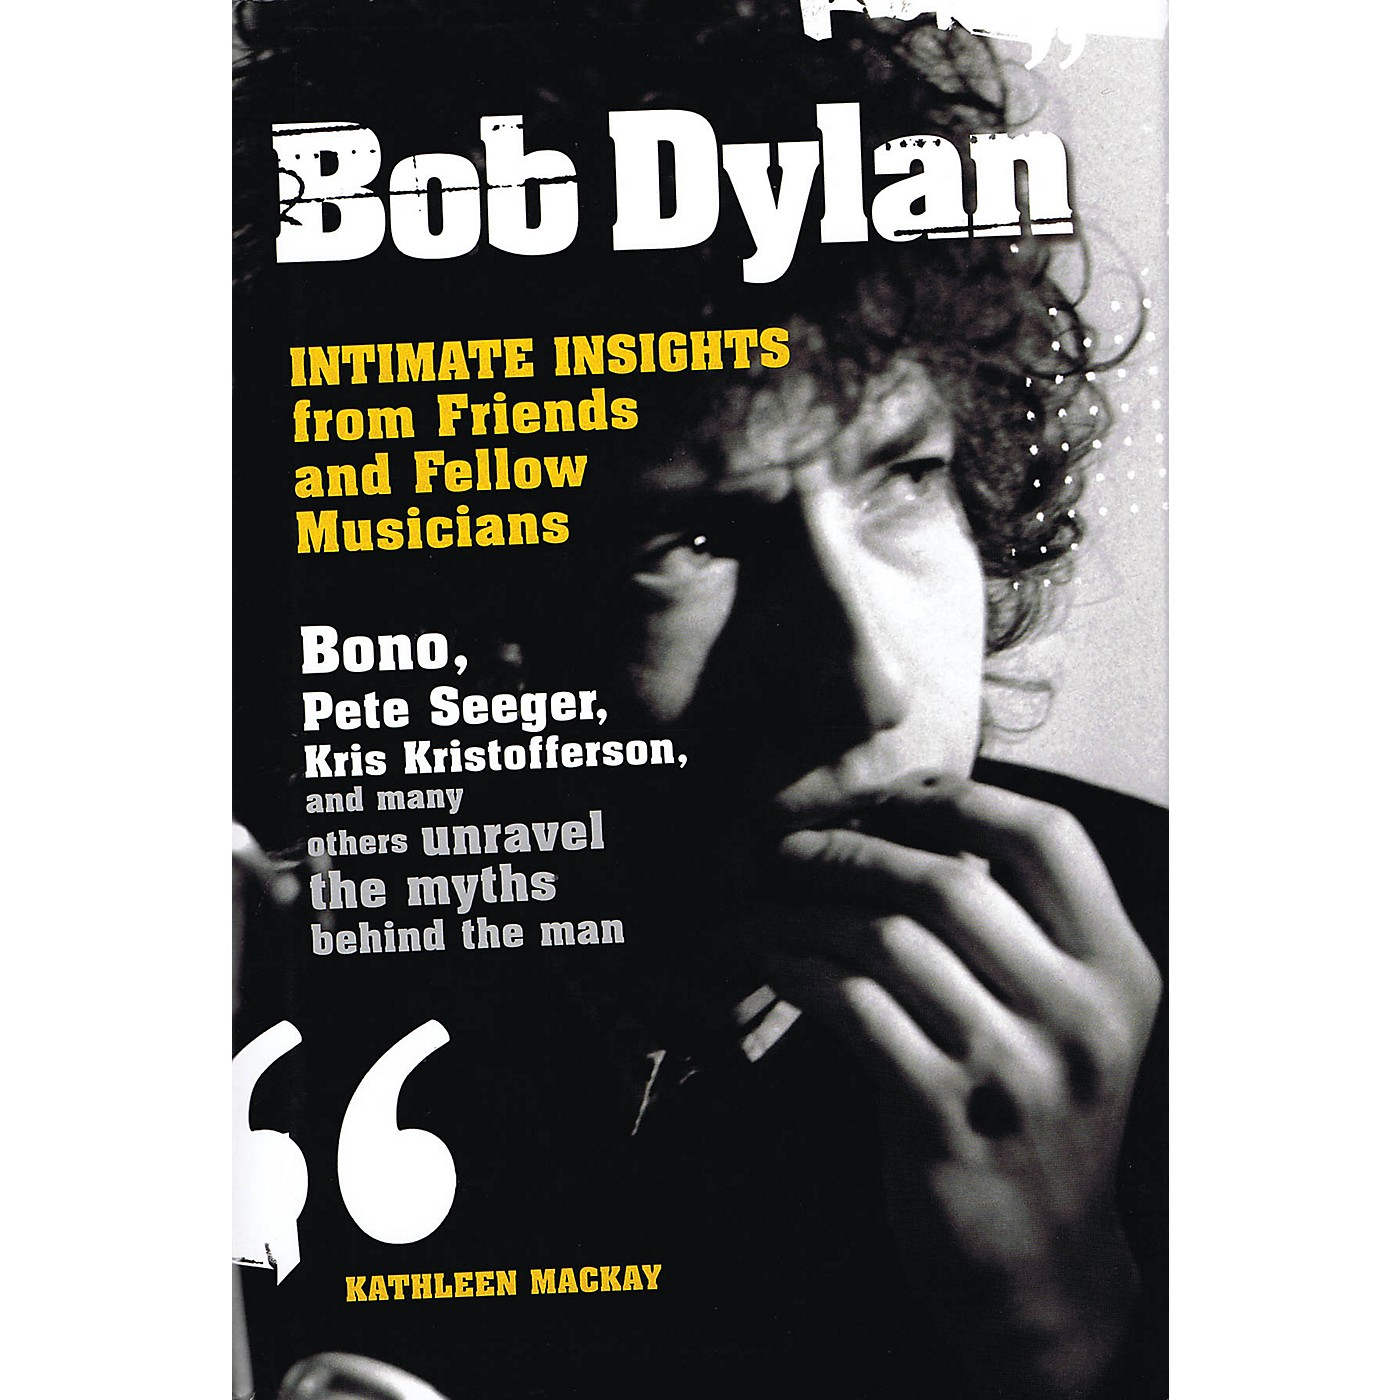 Omnibus Bob Dylan - Intimate Insights from Friends and Fellow Musicians Omnibus Press Series Hardcover thumbnail